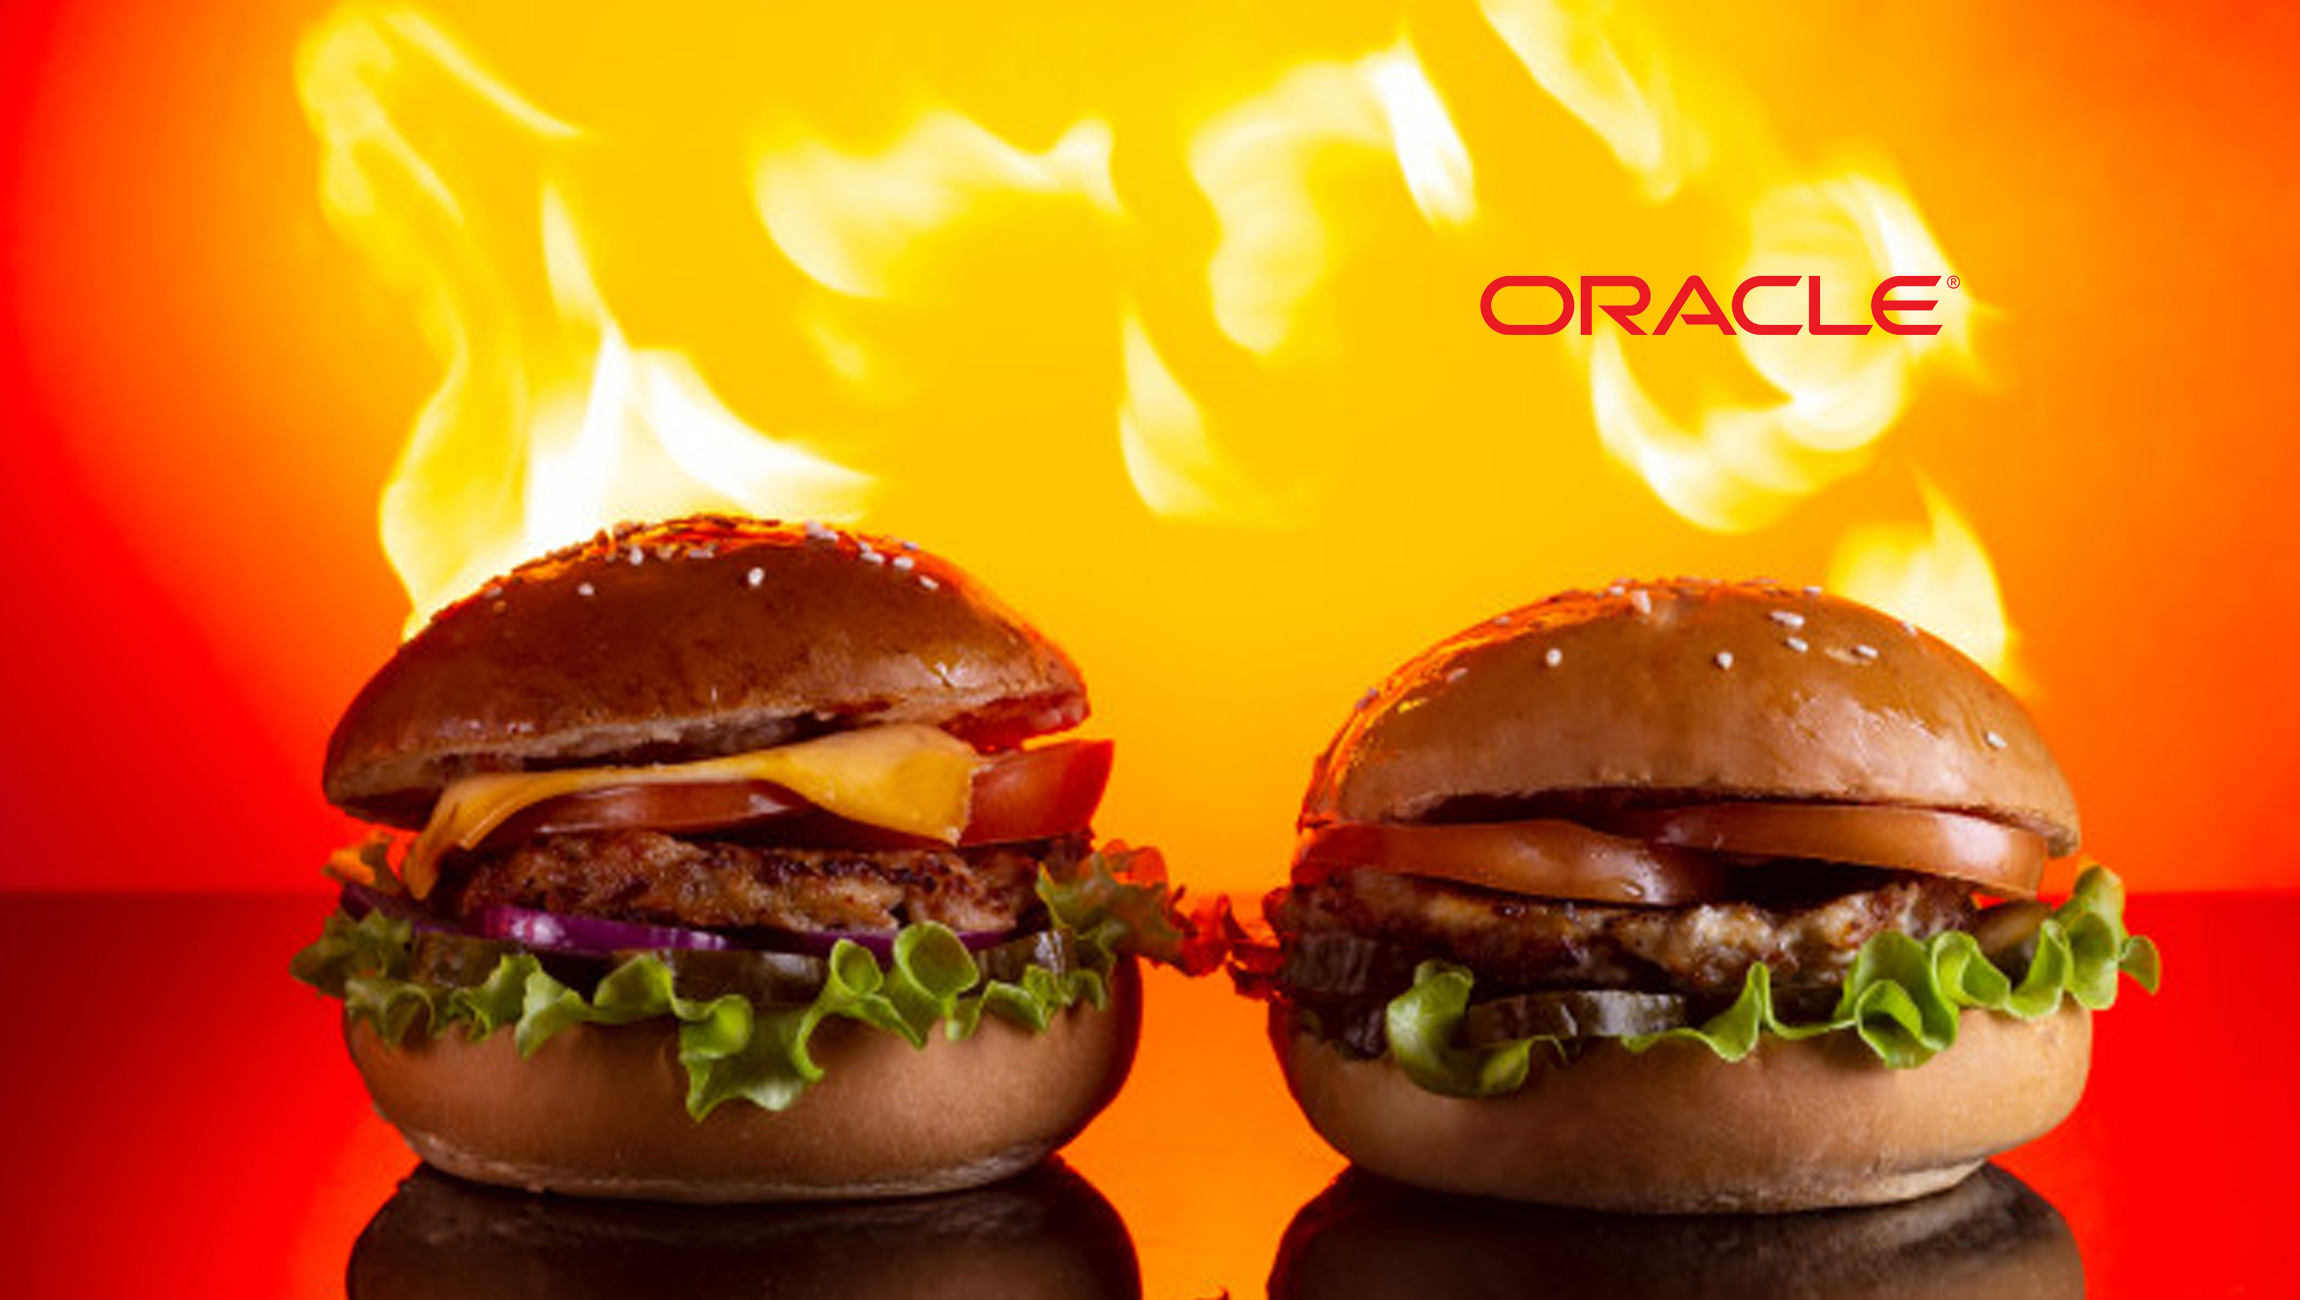 Spain's New York Burger Delivers Sizzling Service with Oracle